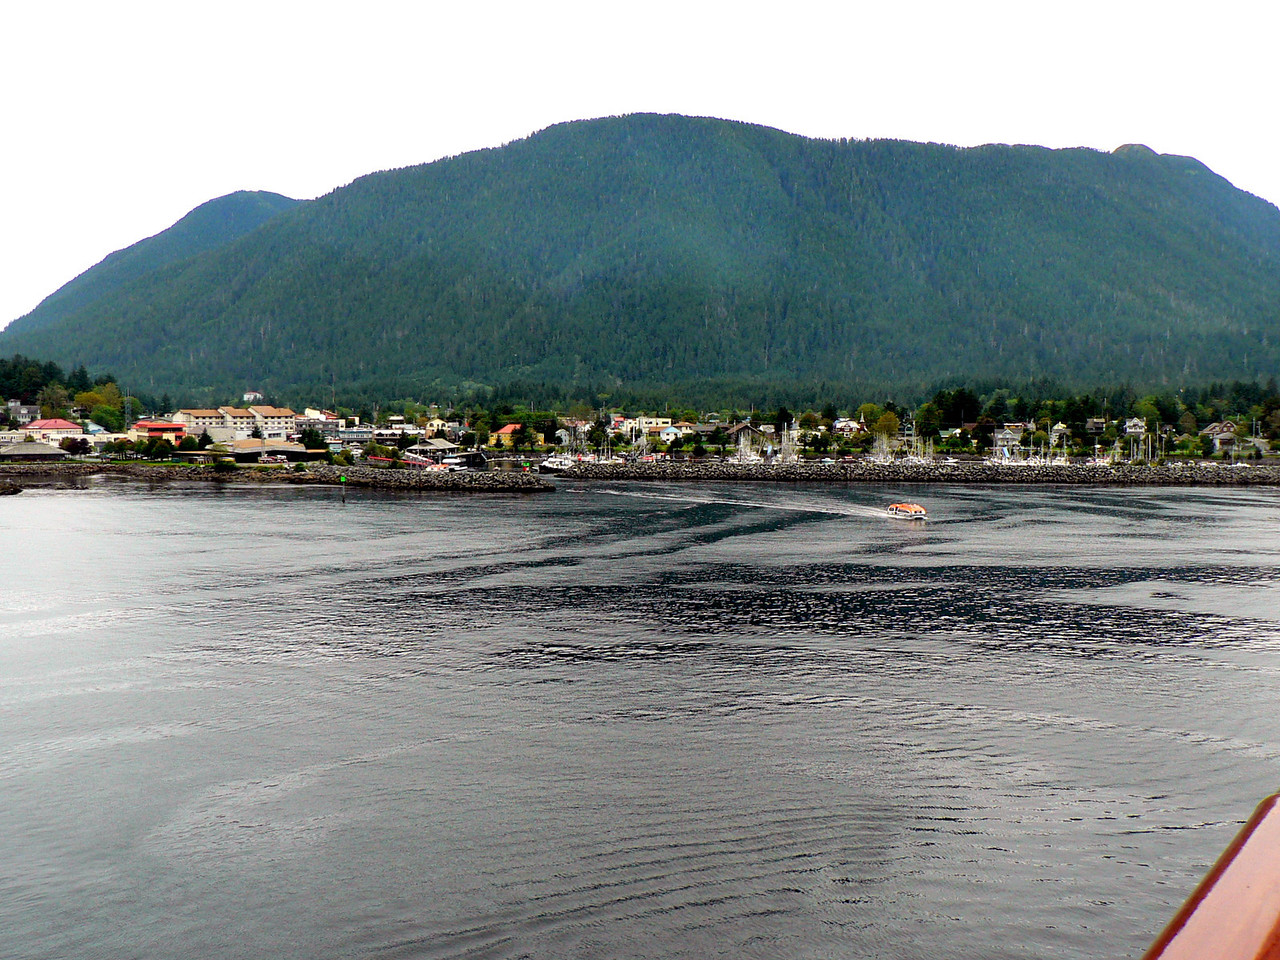 In Sitka we had to anchor in the bay and be tendered ashore.